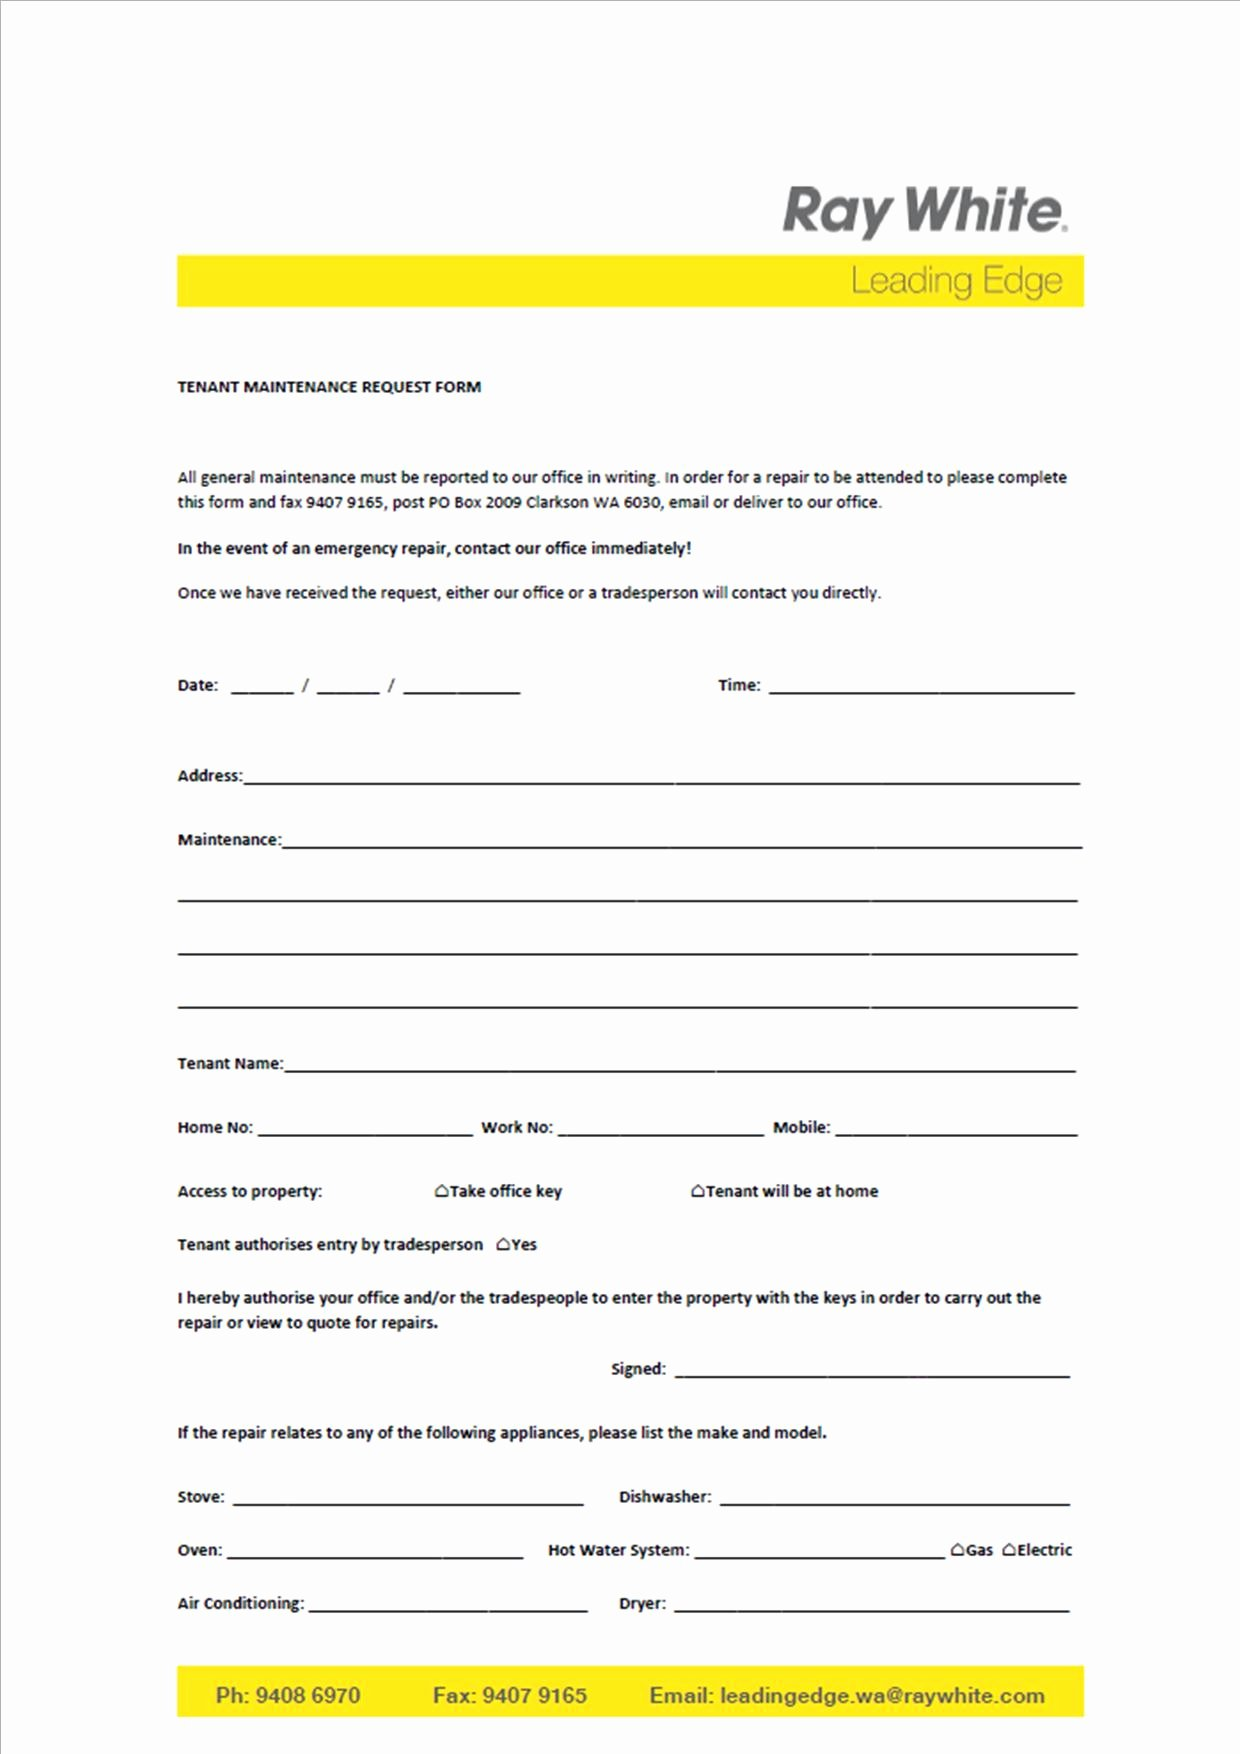 Maintenance Request form Template Awesome Maintenance Request form Design Templates